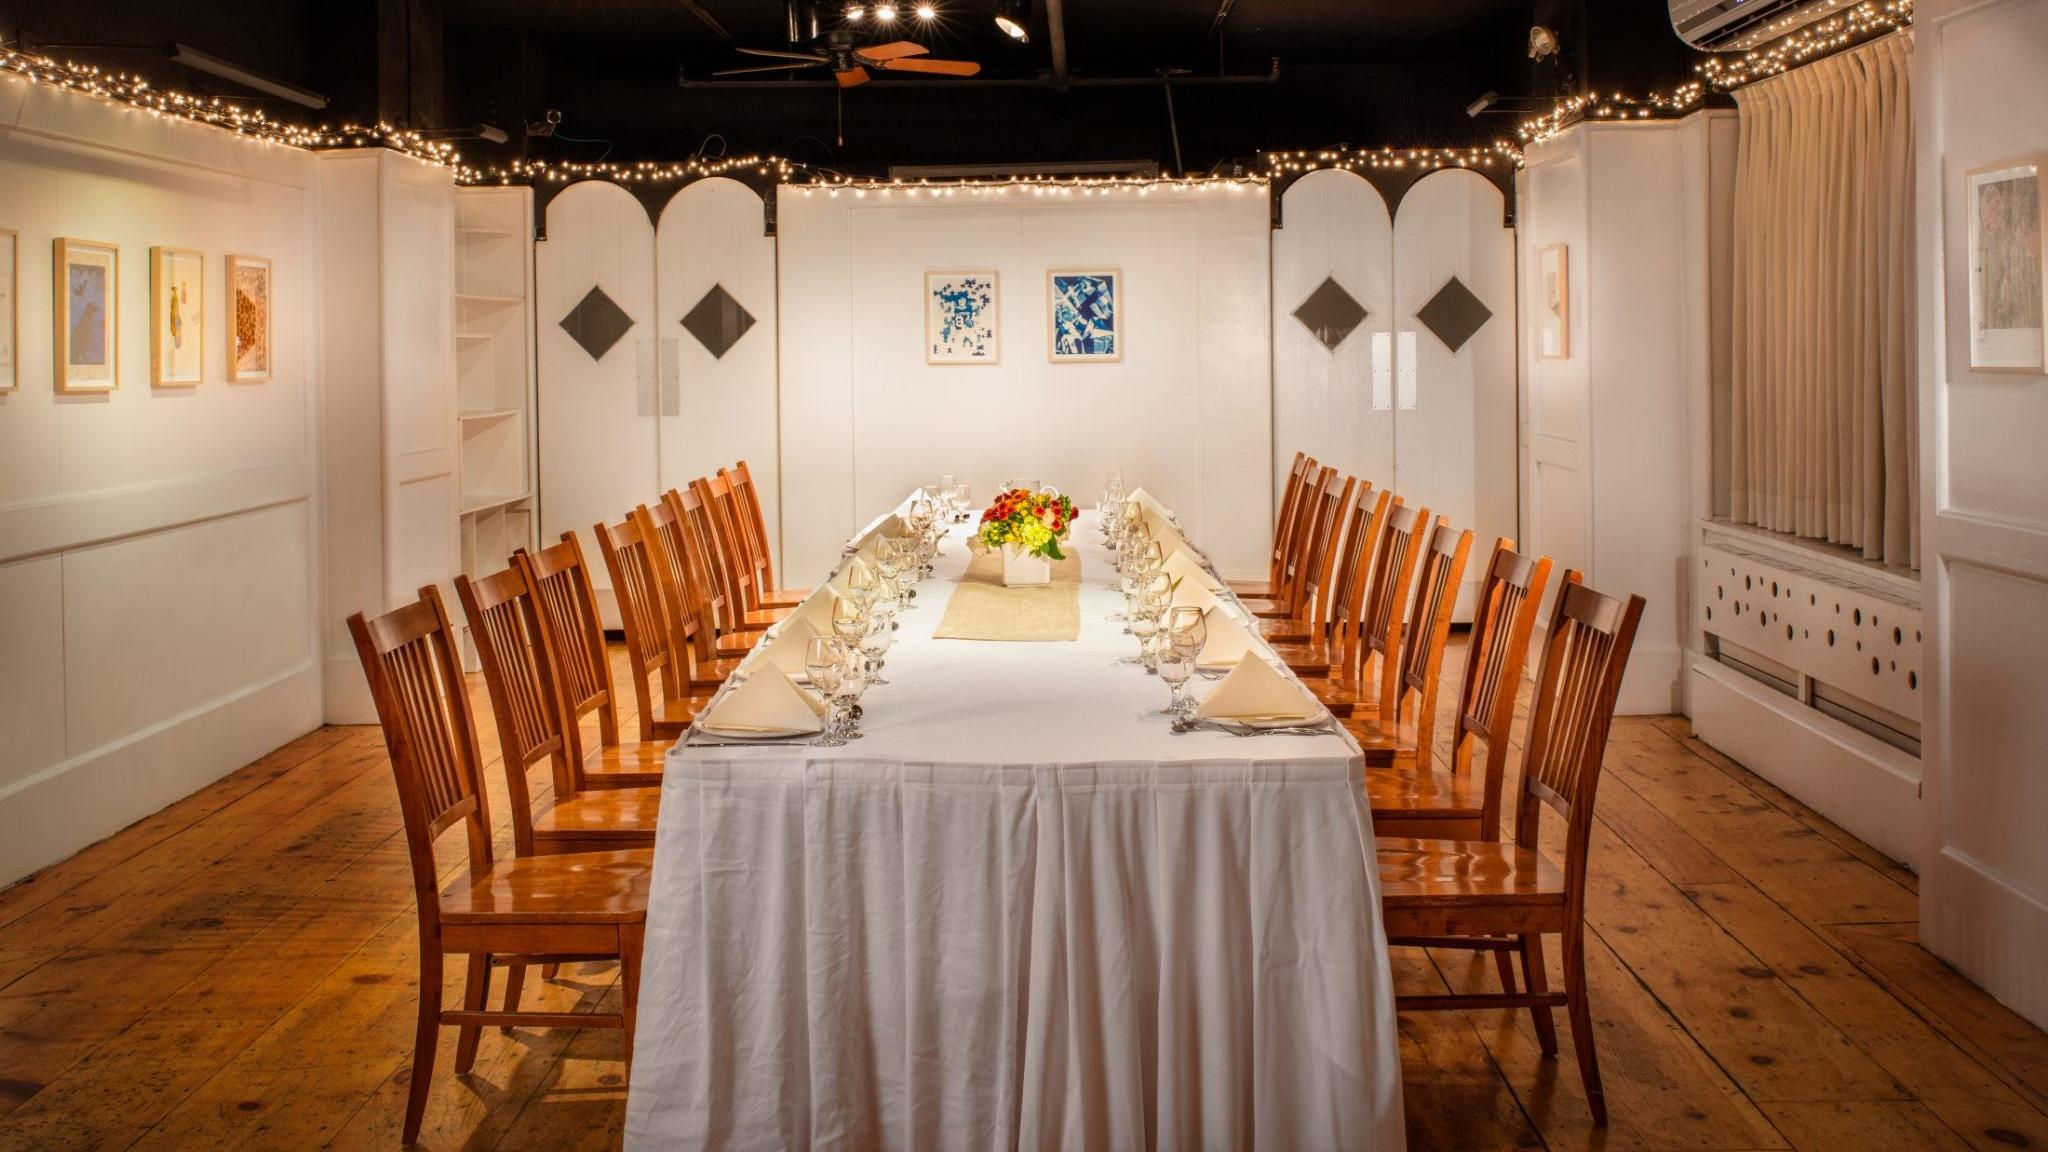 NYC Meeting & Event Venues at The Roger Smith Hotel